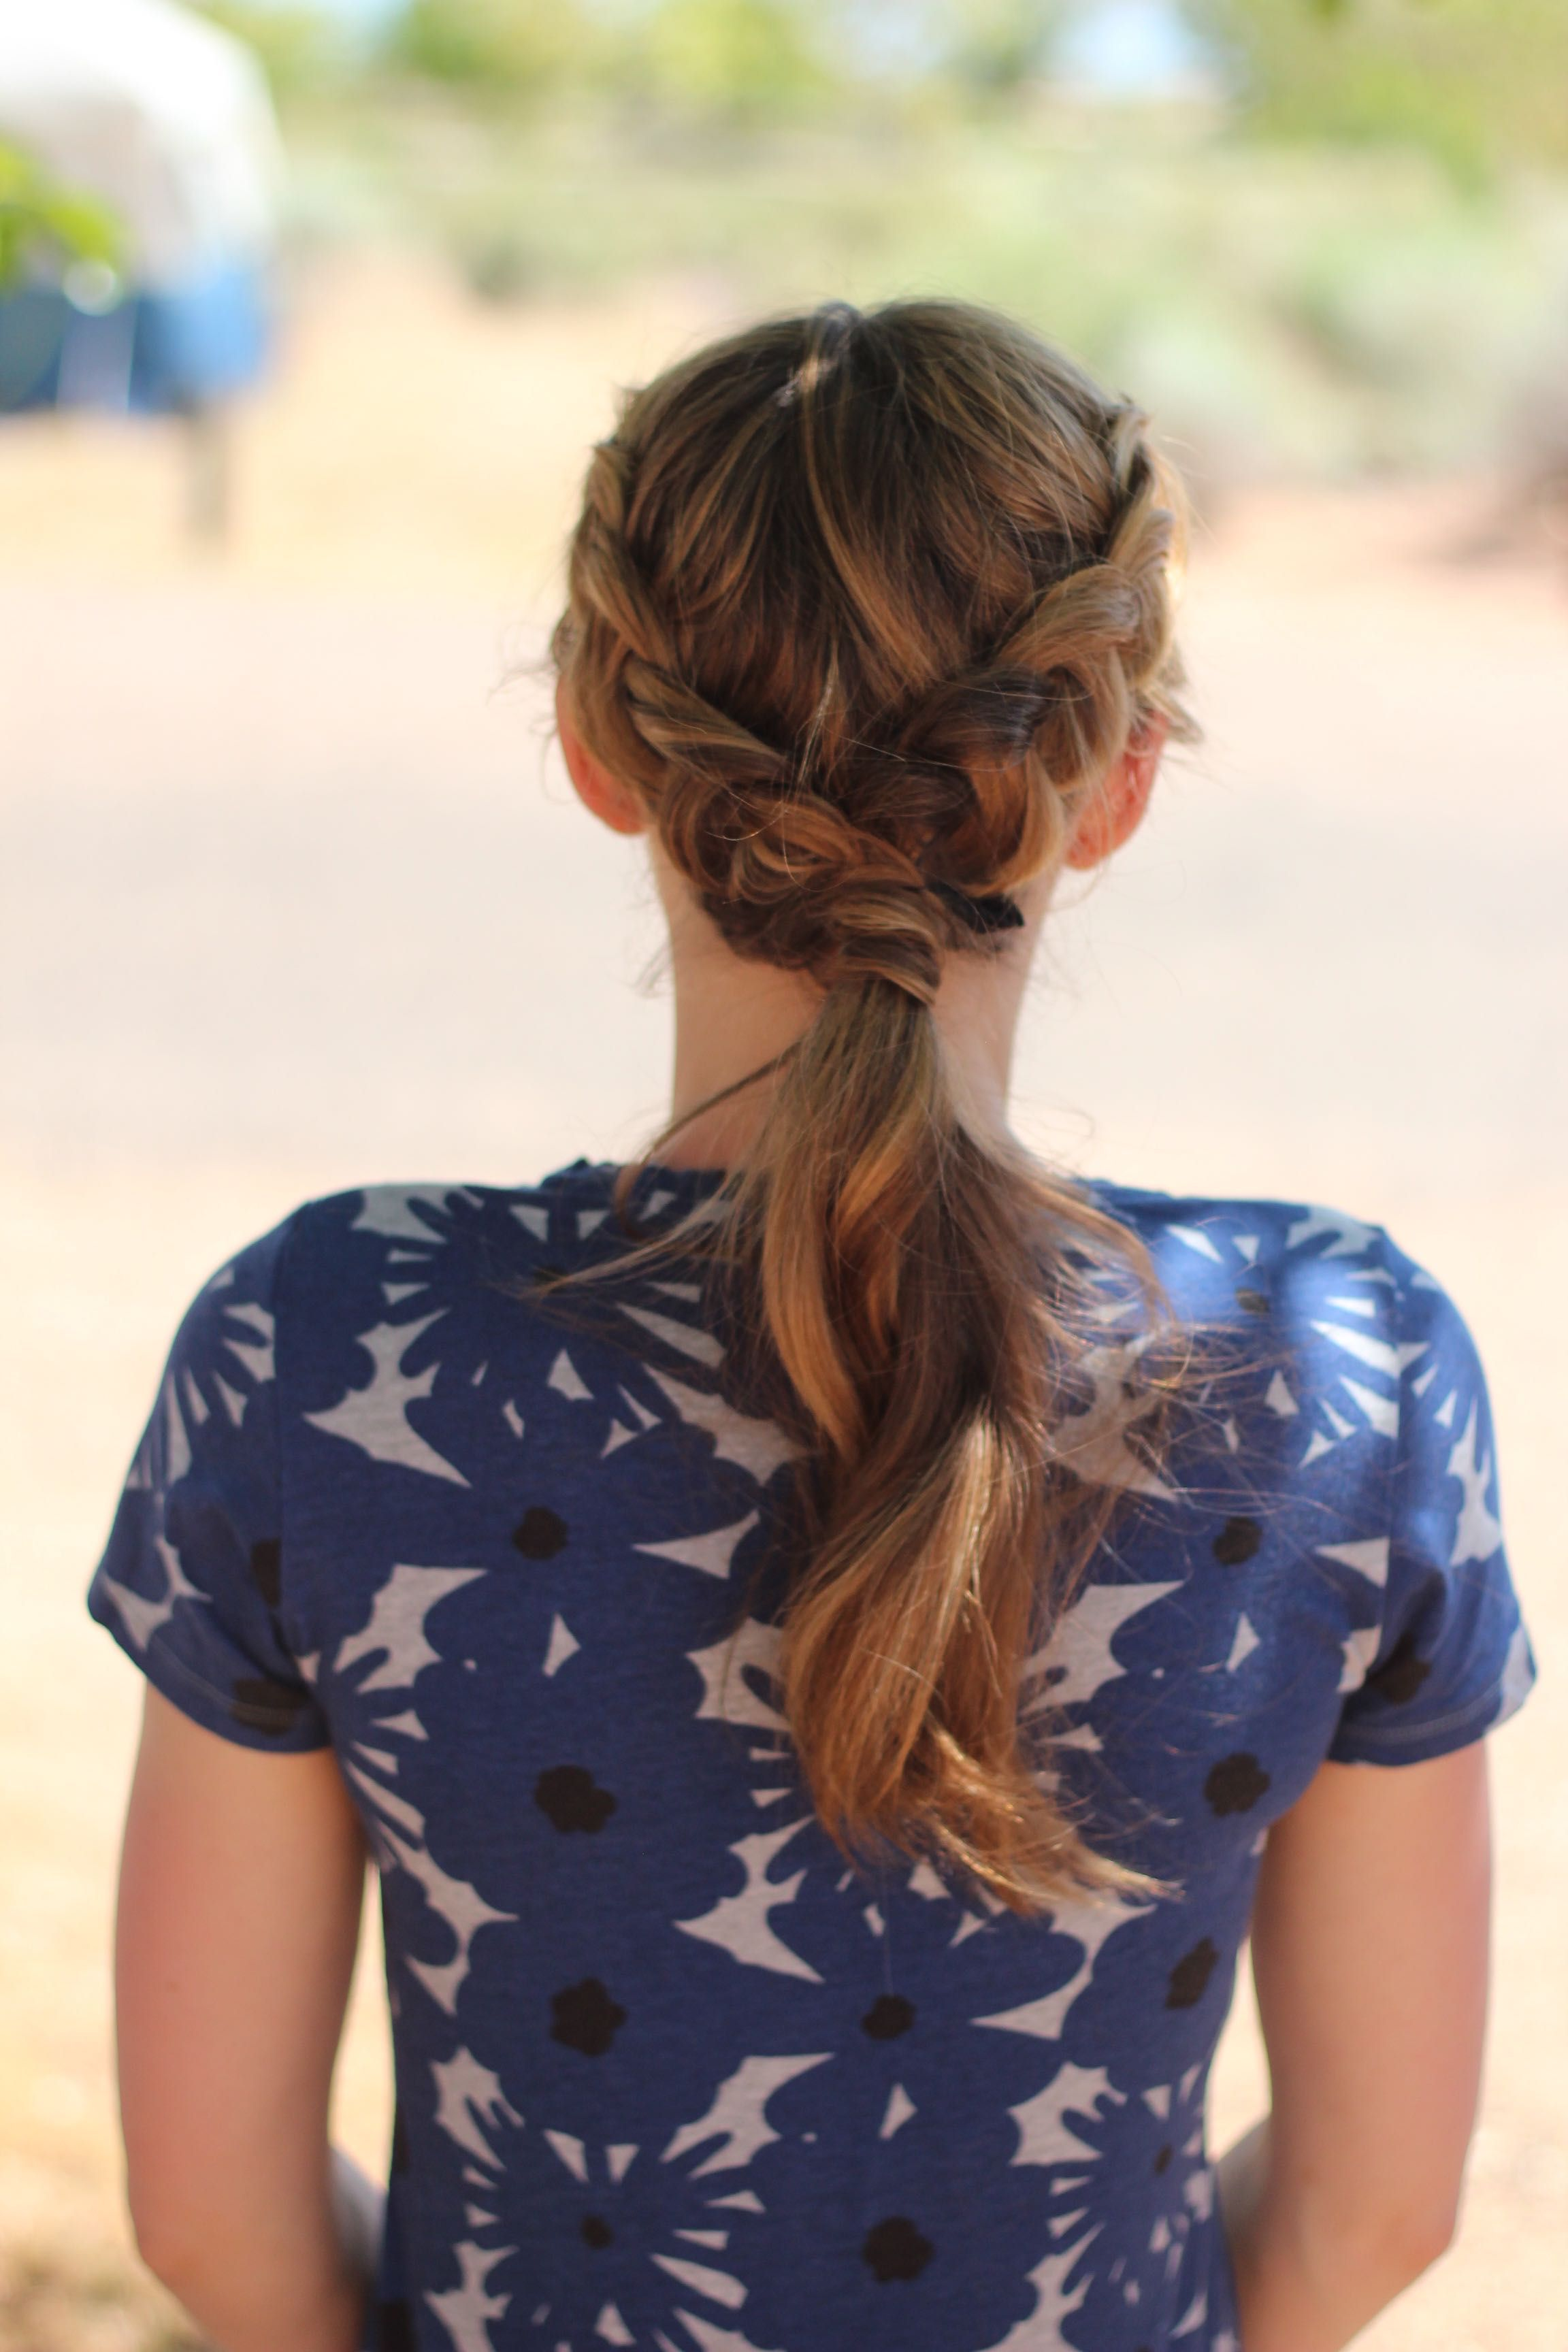 hair by christine herbst: camping hairstyle! #dutchbraids